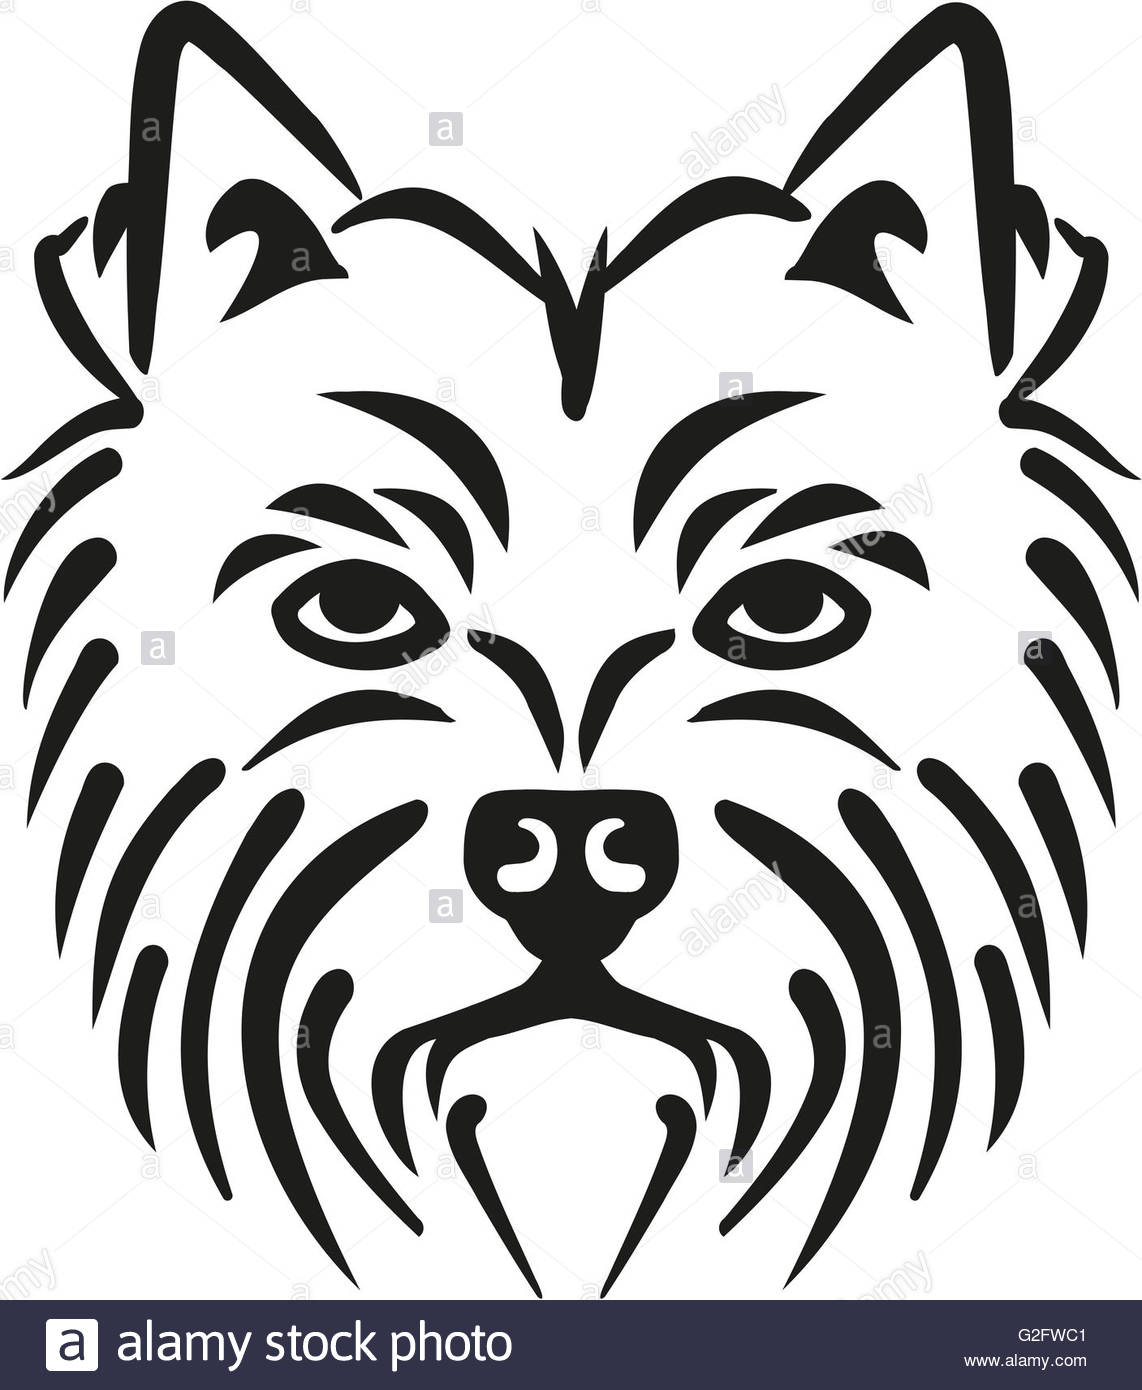 1142x1390 West Highland Terrier Head Stock Photo, Royalty Free Image